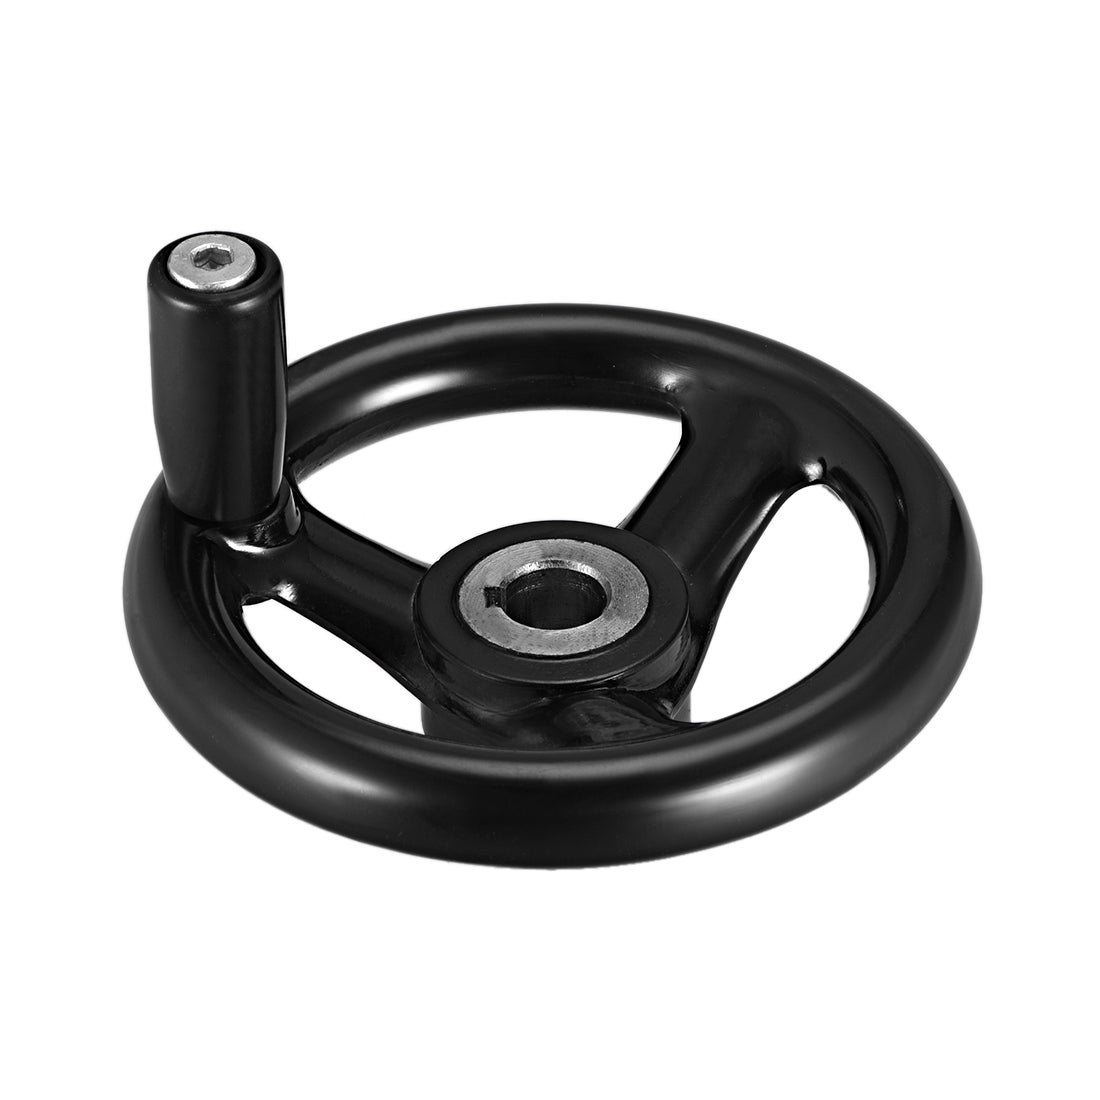 Hand Wheel 100 mm Diameter 12 mm Hole Diameter for milling Machine 2 Pieces